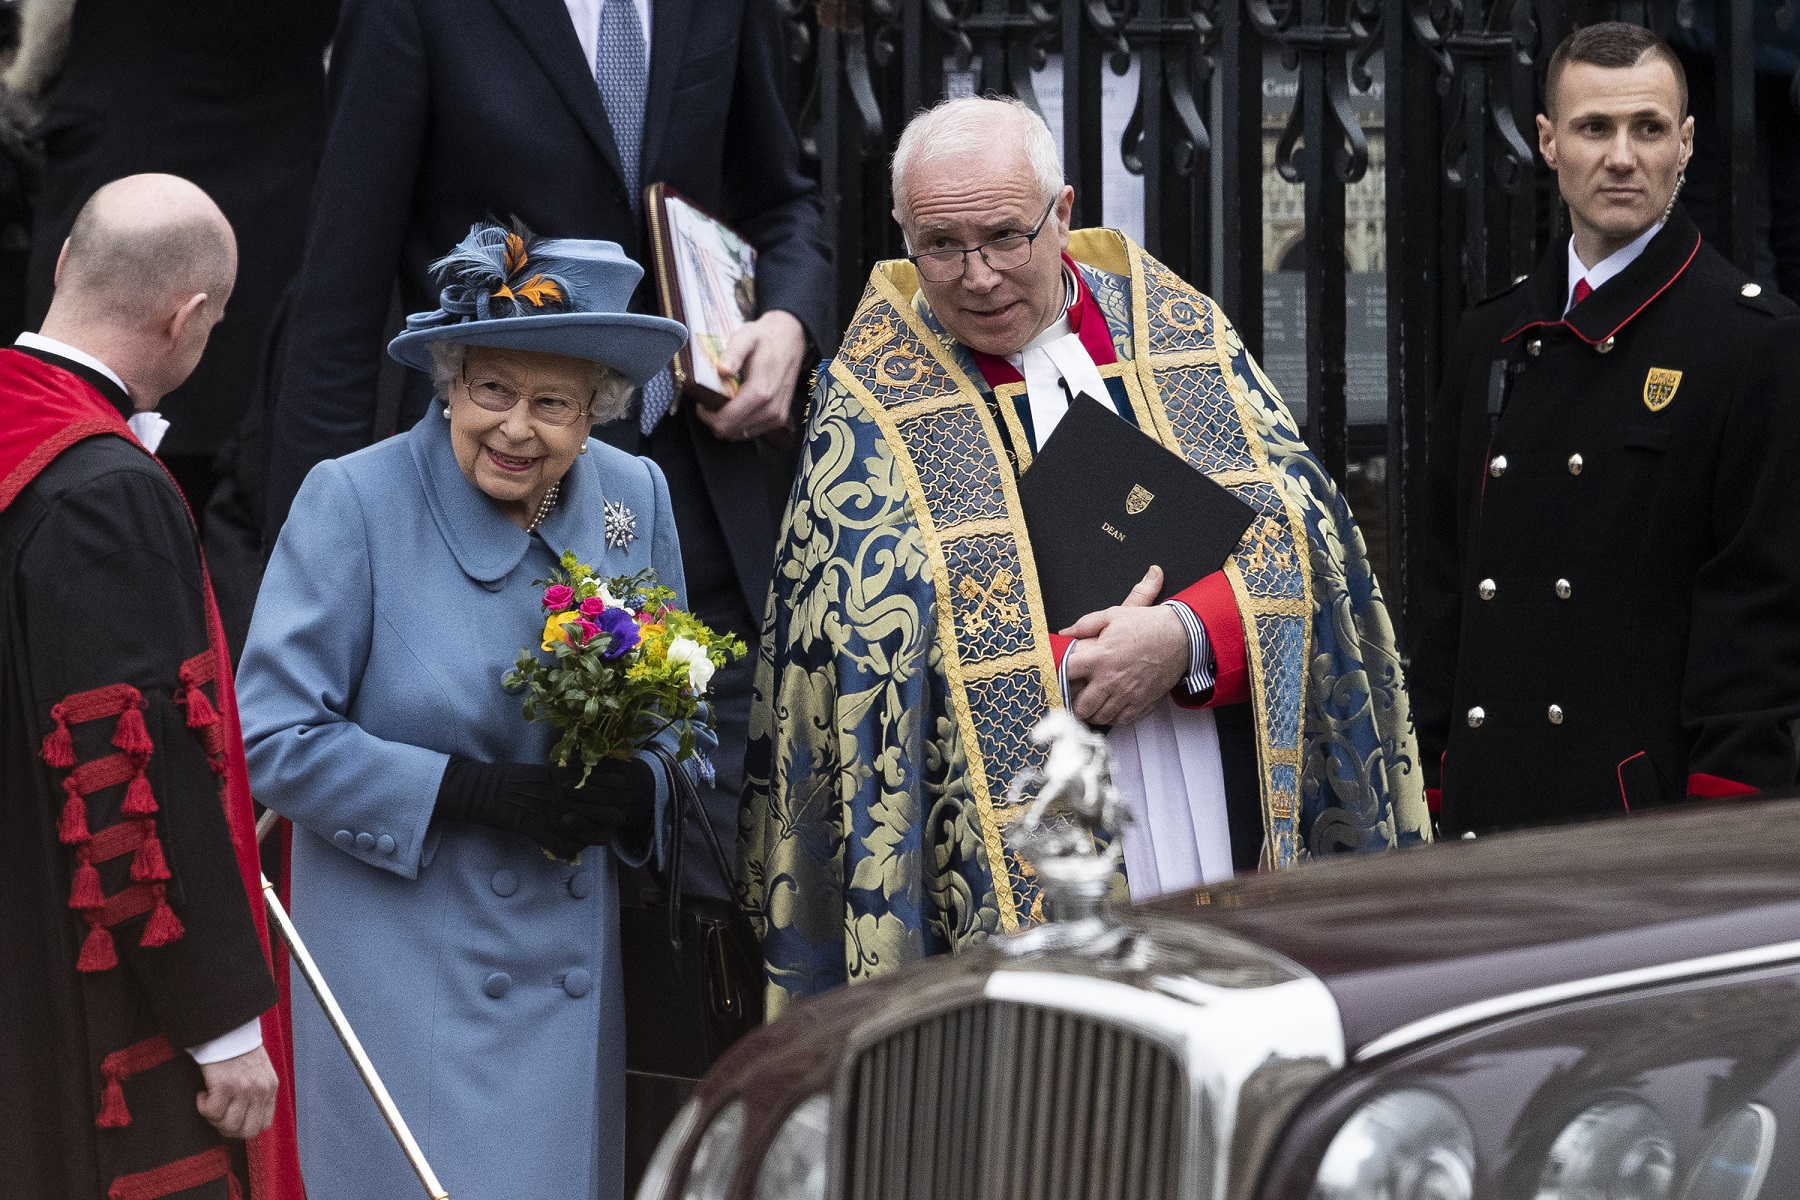 LONDON, ENGLAND - MARCH 09: Queen Elizabeth II leaves after attending the Commonwealth Day Service 2020 on March 09, 2020 in London, England. (Photo by Dan Kitwood/Getty Images)